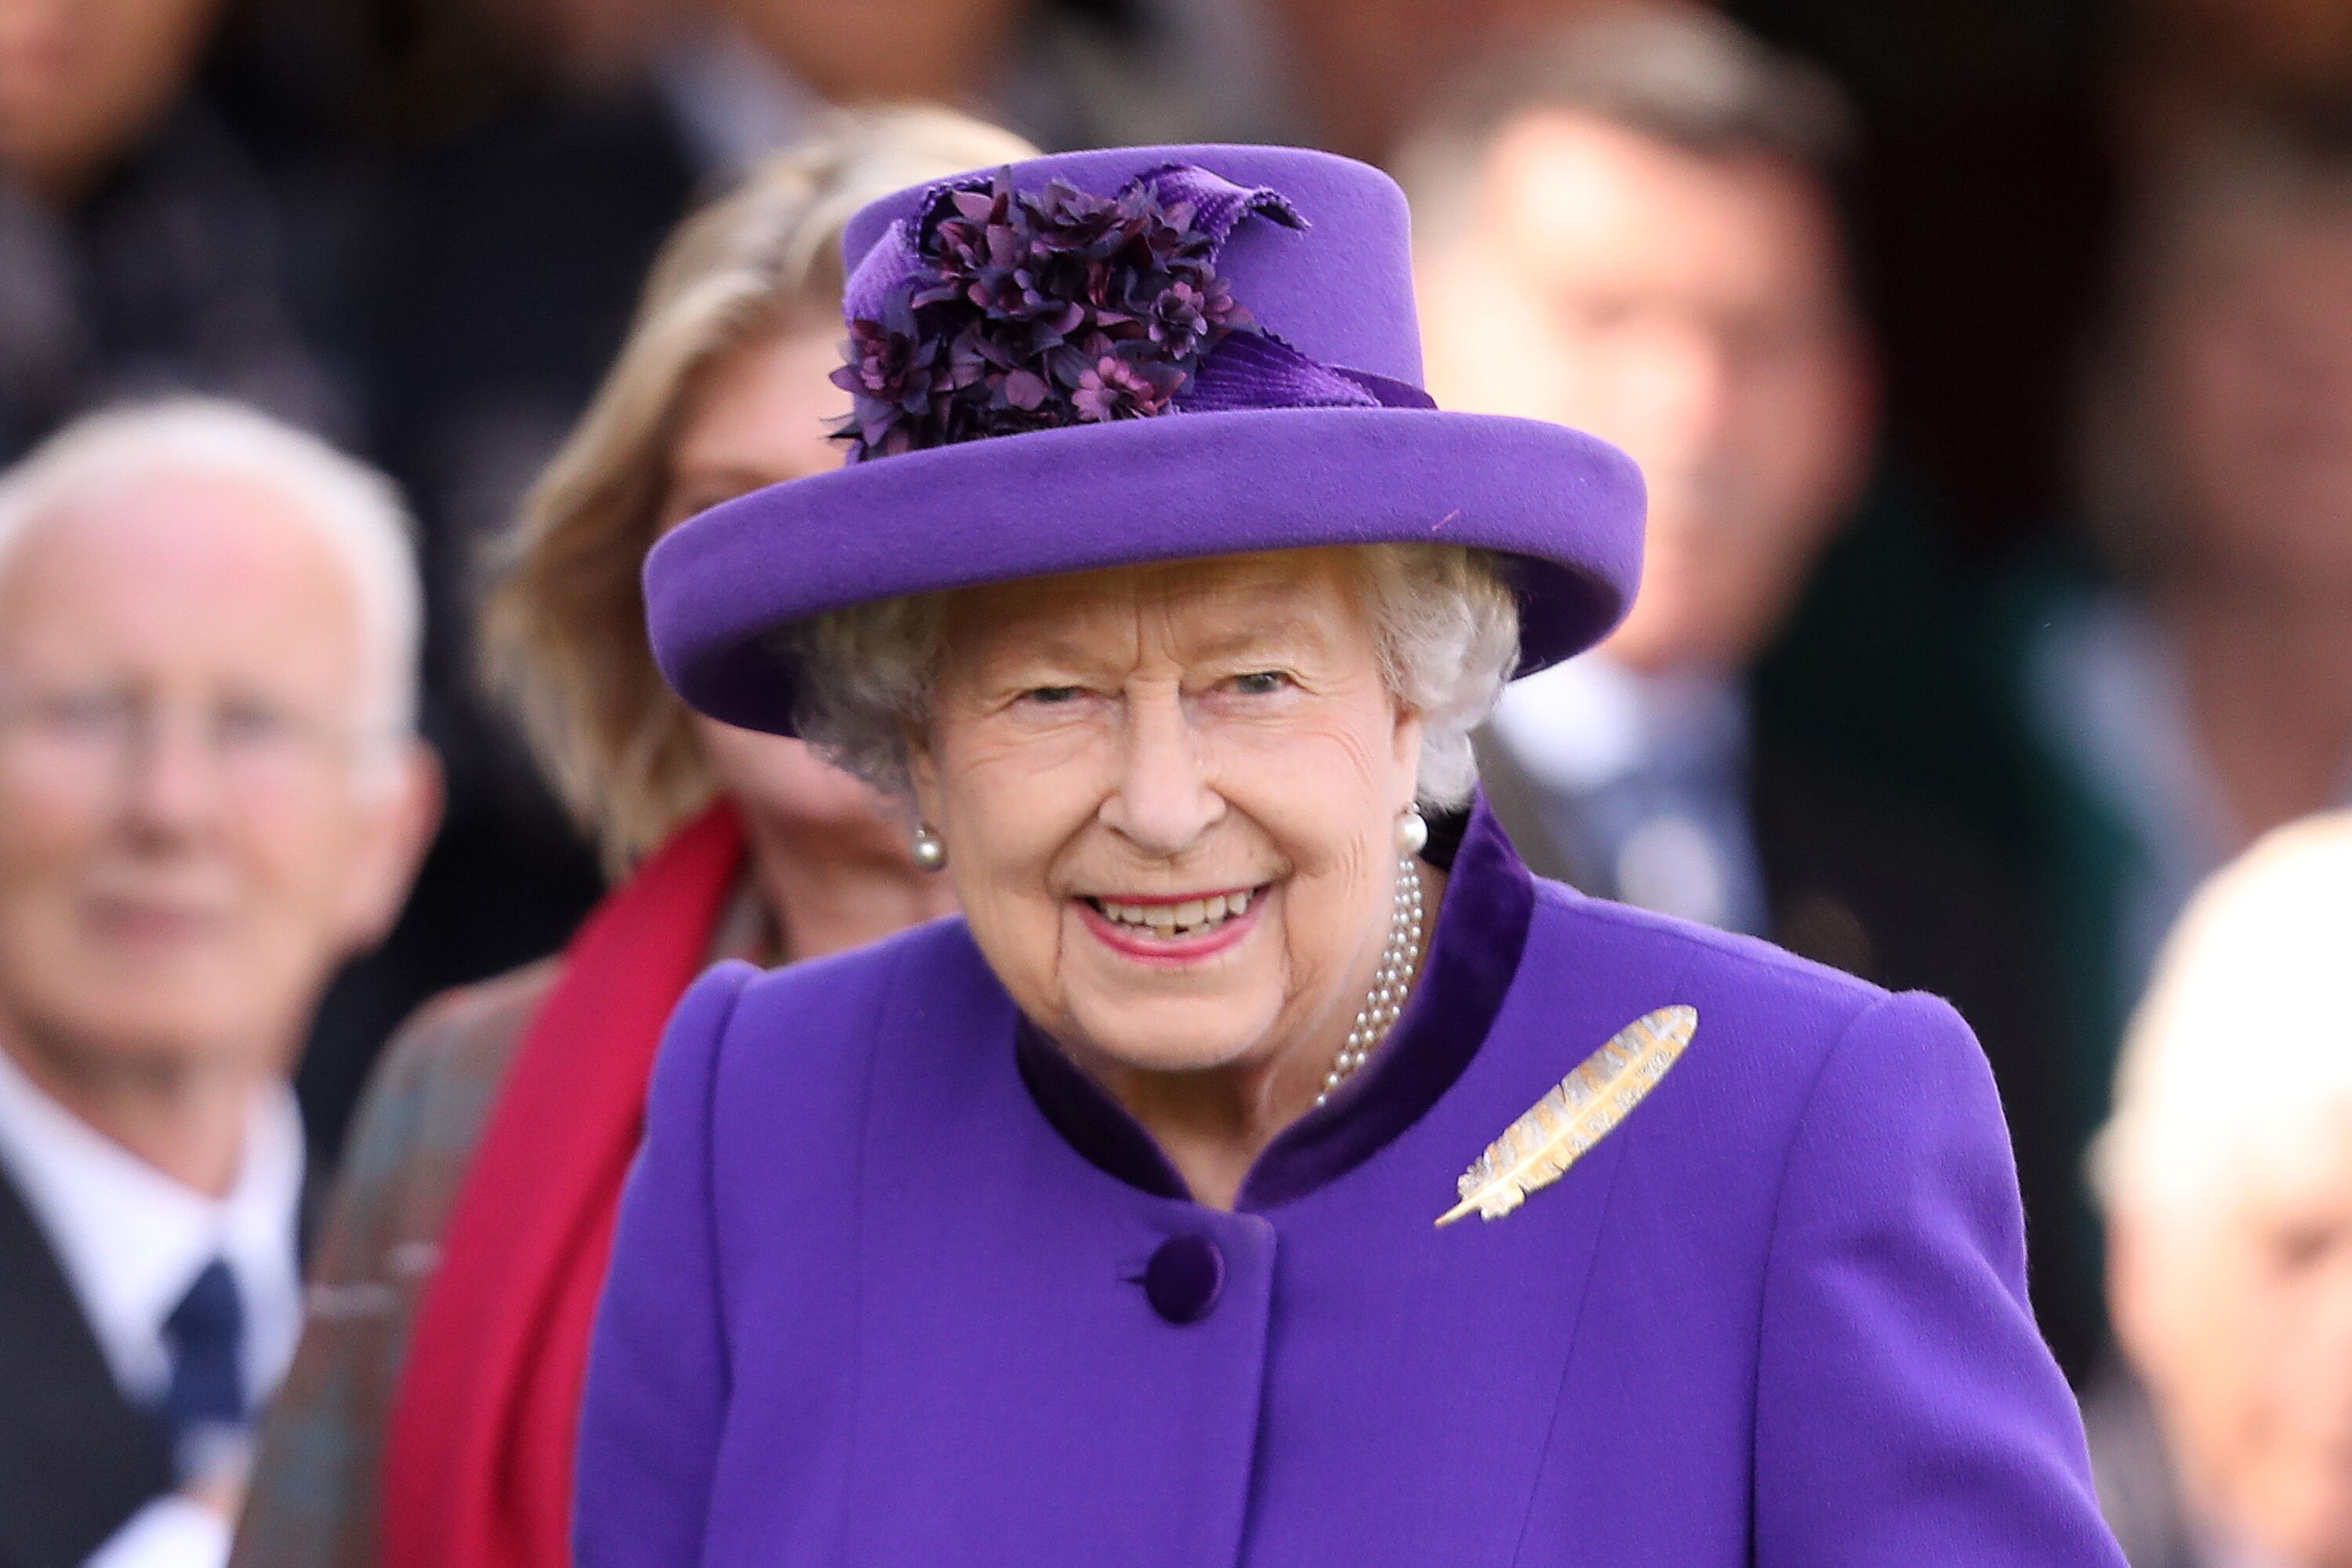 Queen Elizabeth II at the Braemar Highland Games on September 07, 2019, in Scotland | Photo: Chris Jackson/Getty Images